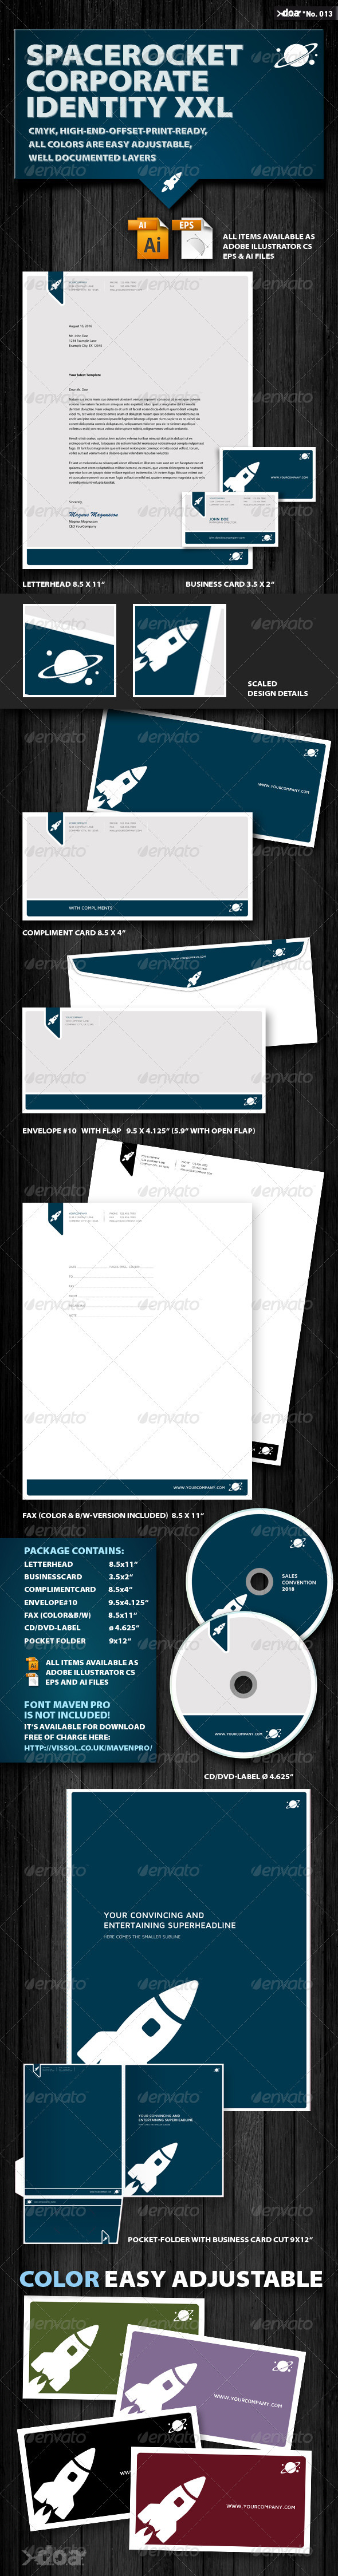 Space Rocket Corporate Identity XXL - Stationery Print Templates